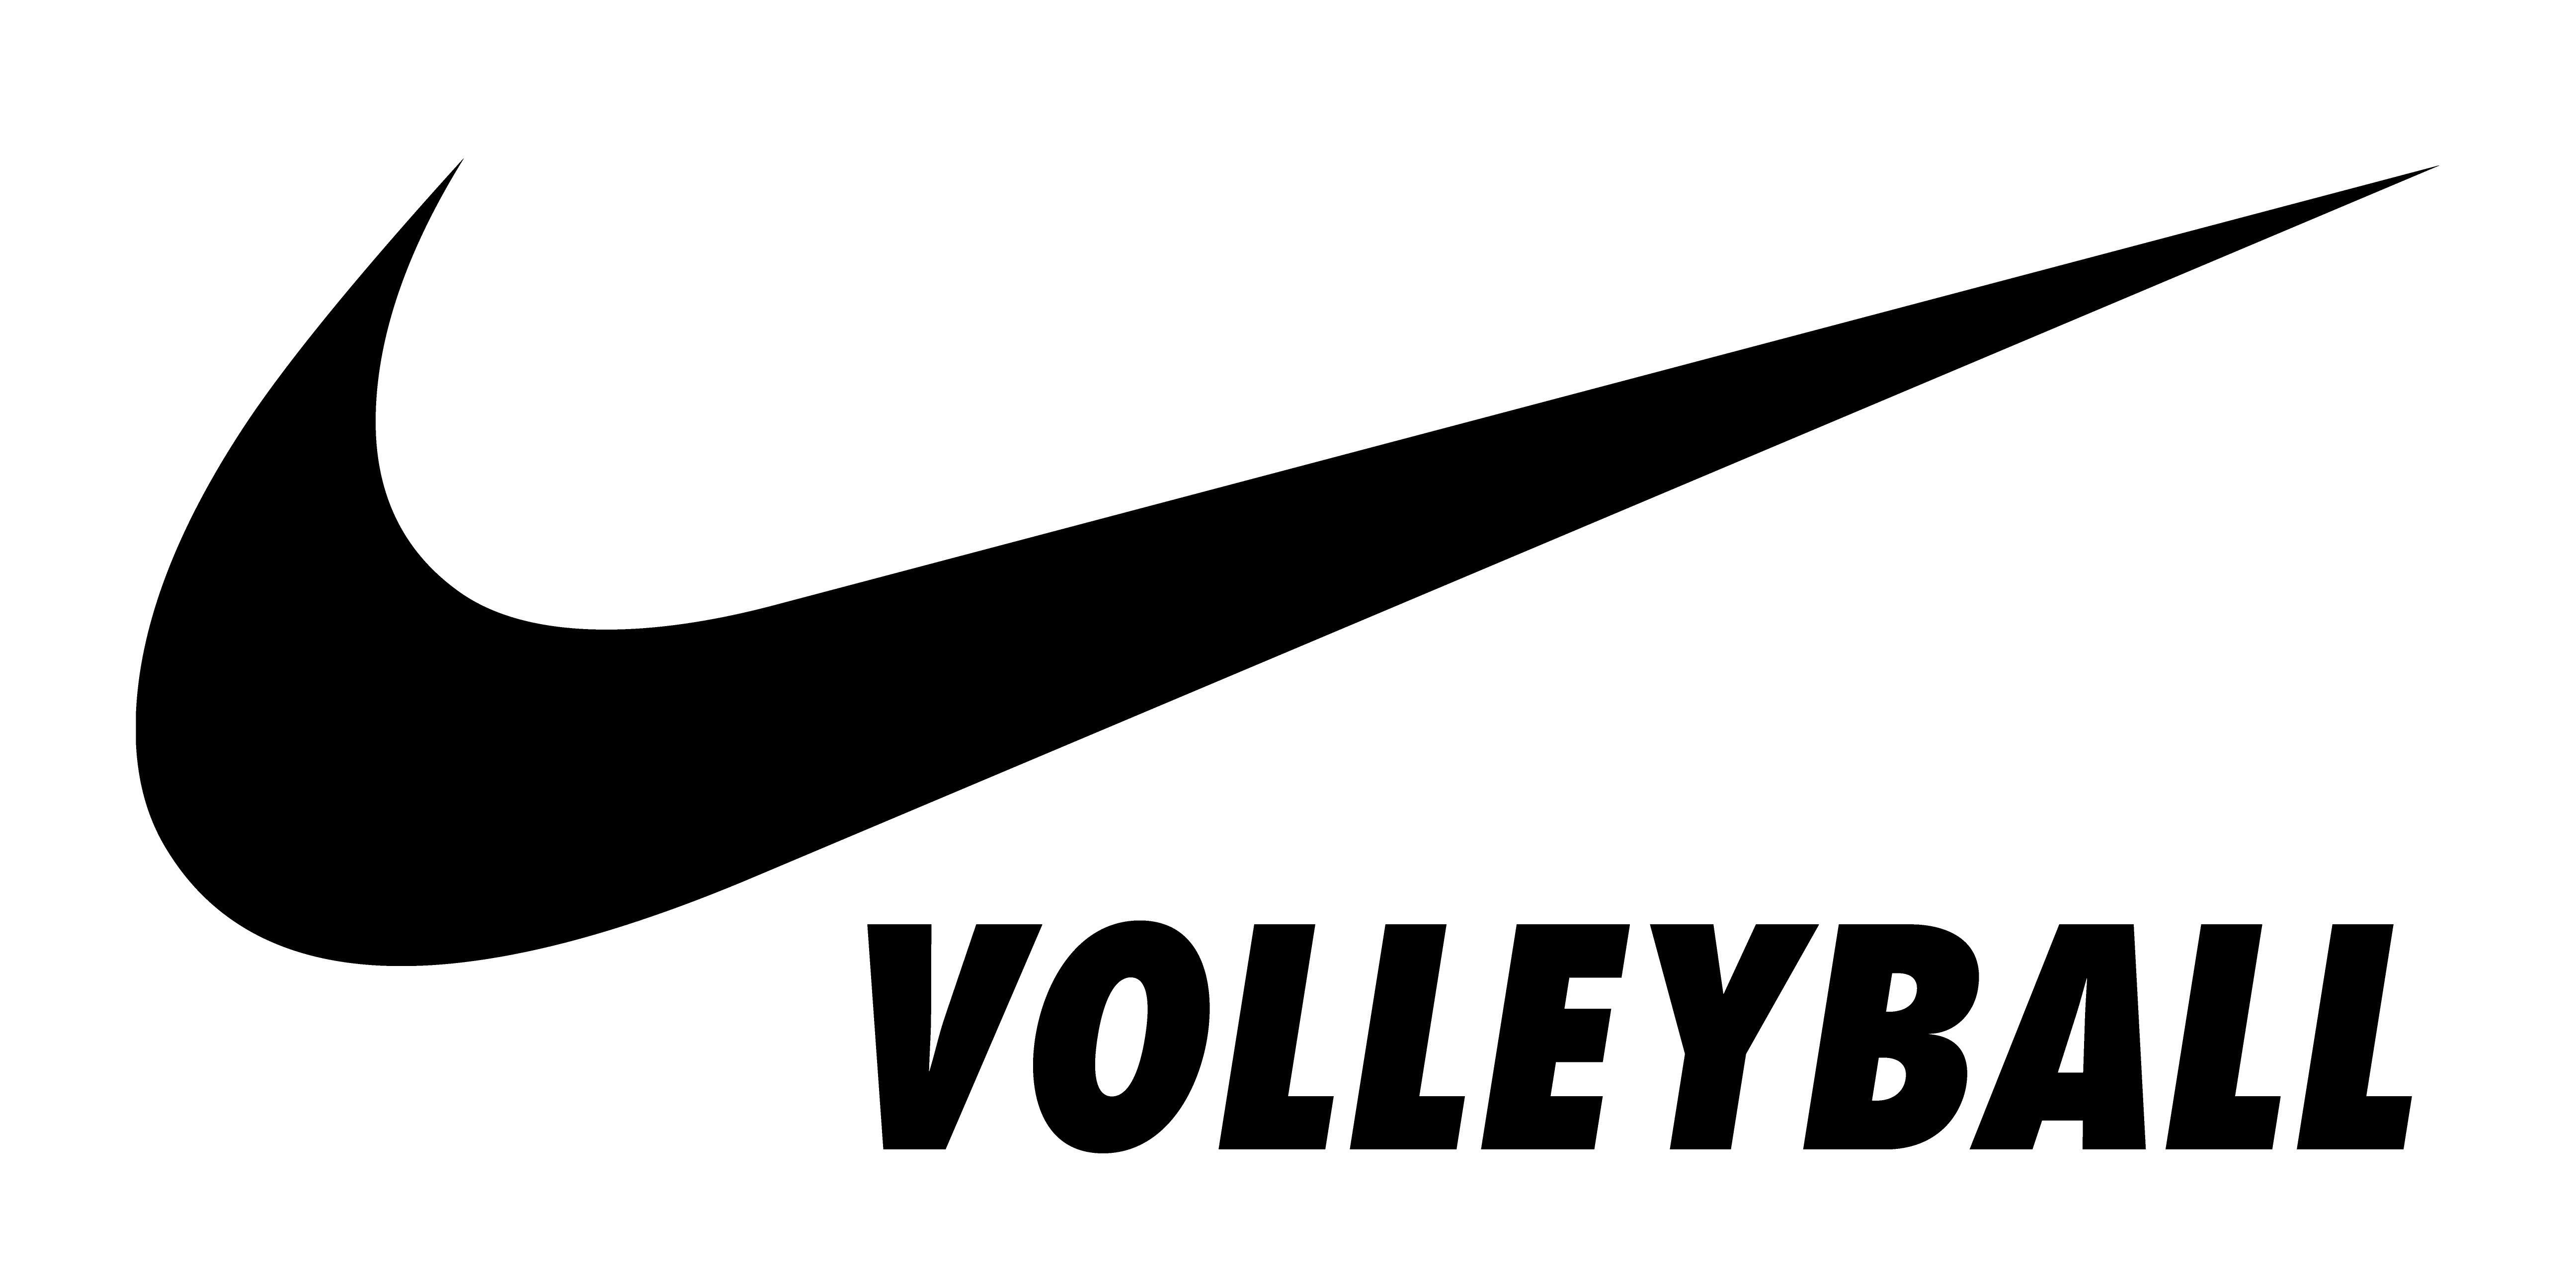 2016 leagueathletics com llc and m1 volleyball 15506 all